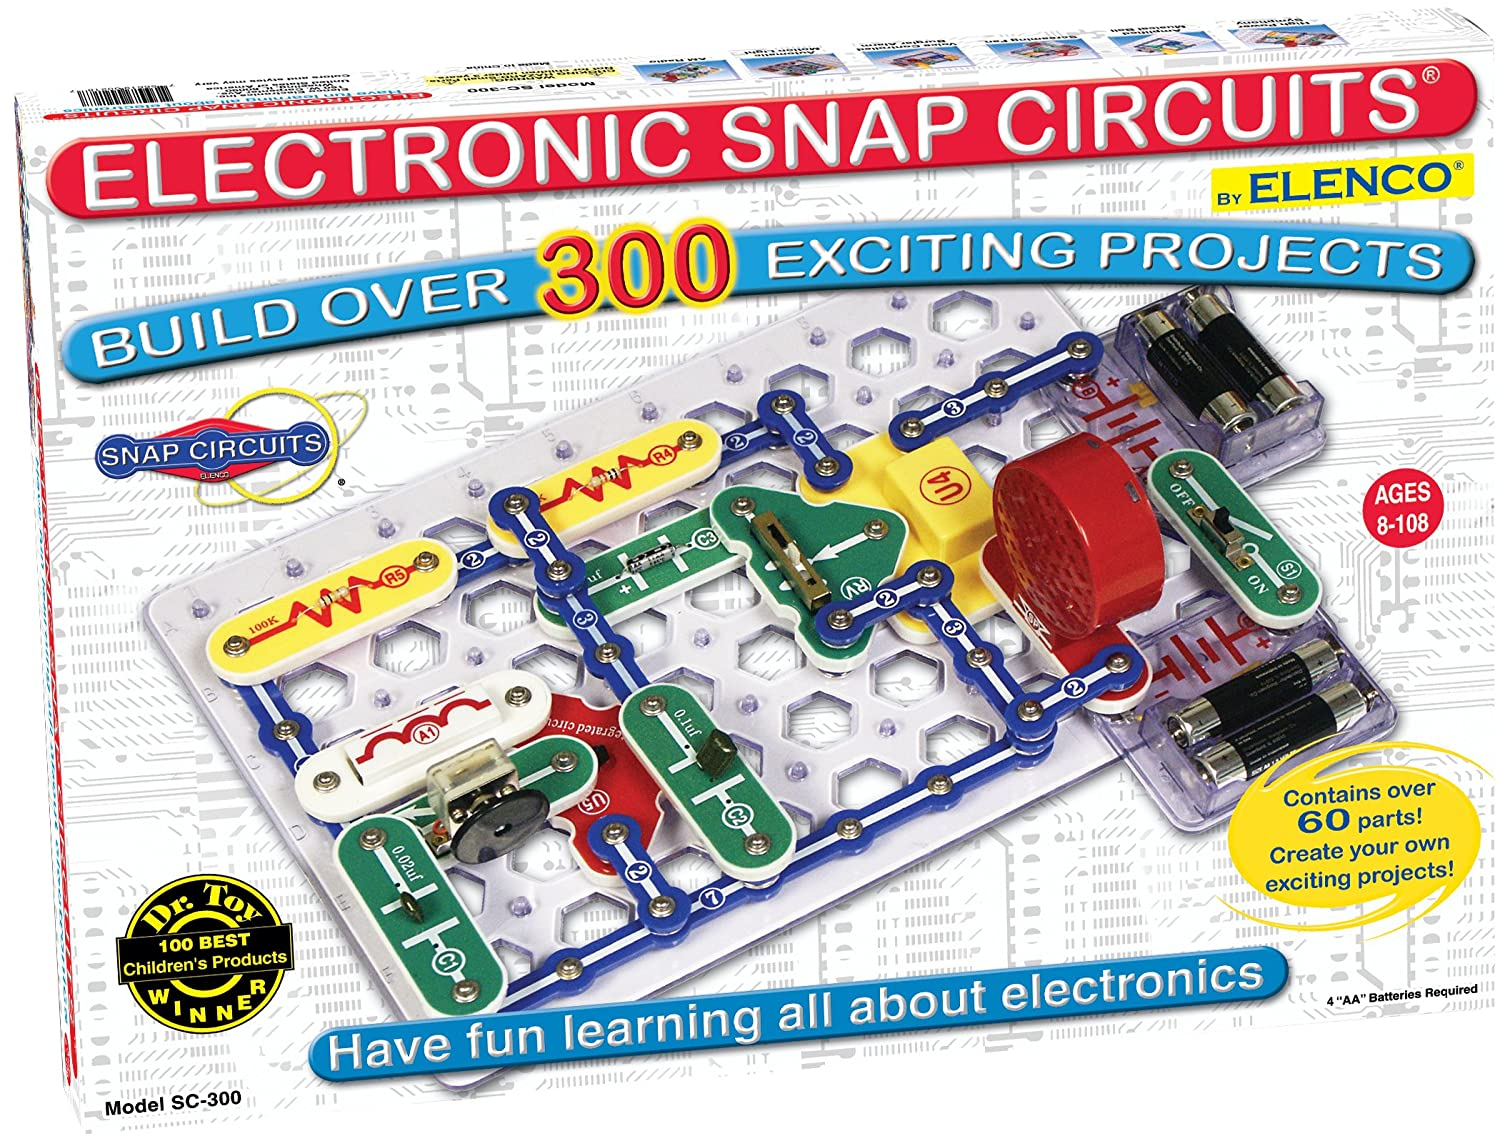 Snap Circuits Classic Sc 300 Electronics Exploration Kit How To Fit A Dimmer Switch Wiring Light Switches Diy Doctor Over Stem Projects 4 Color Project Manual 60 Modules Unlimited Fun